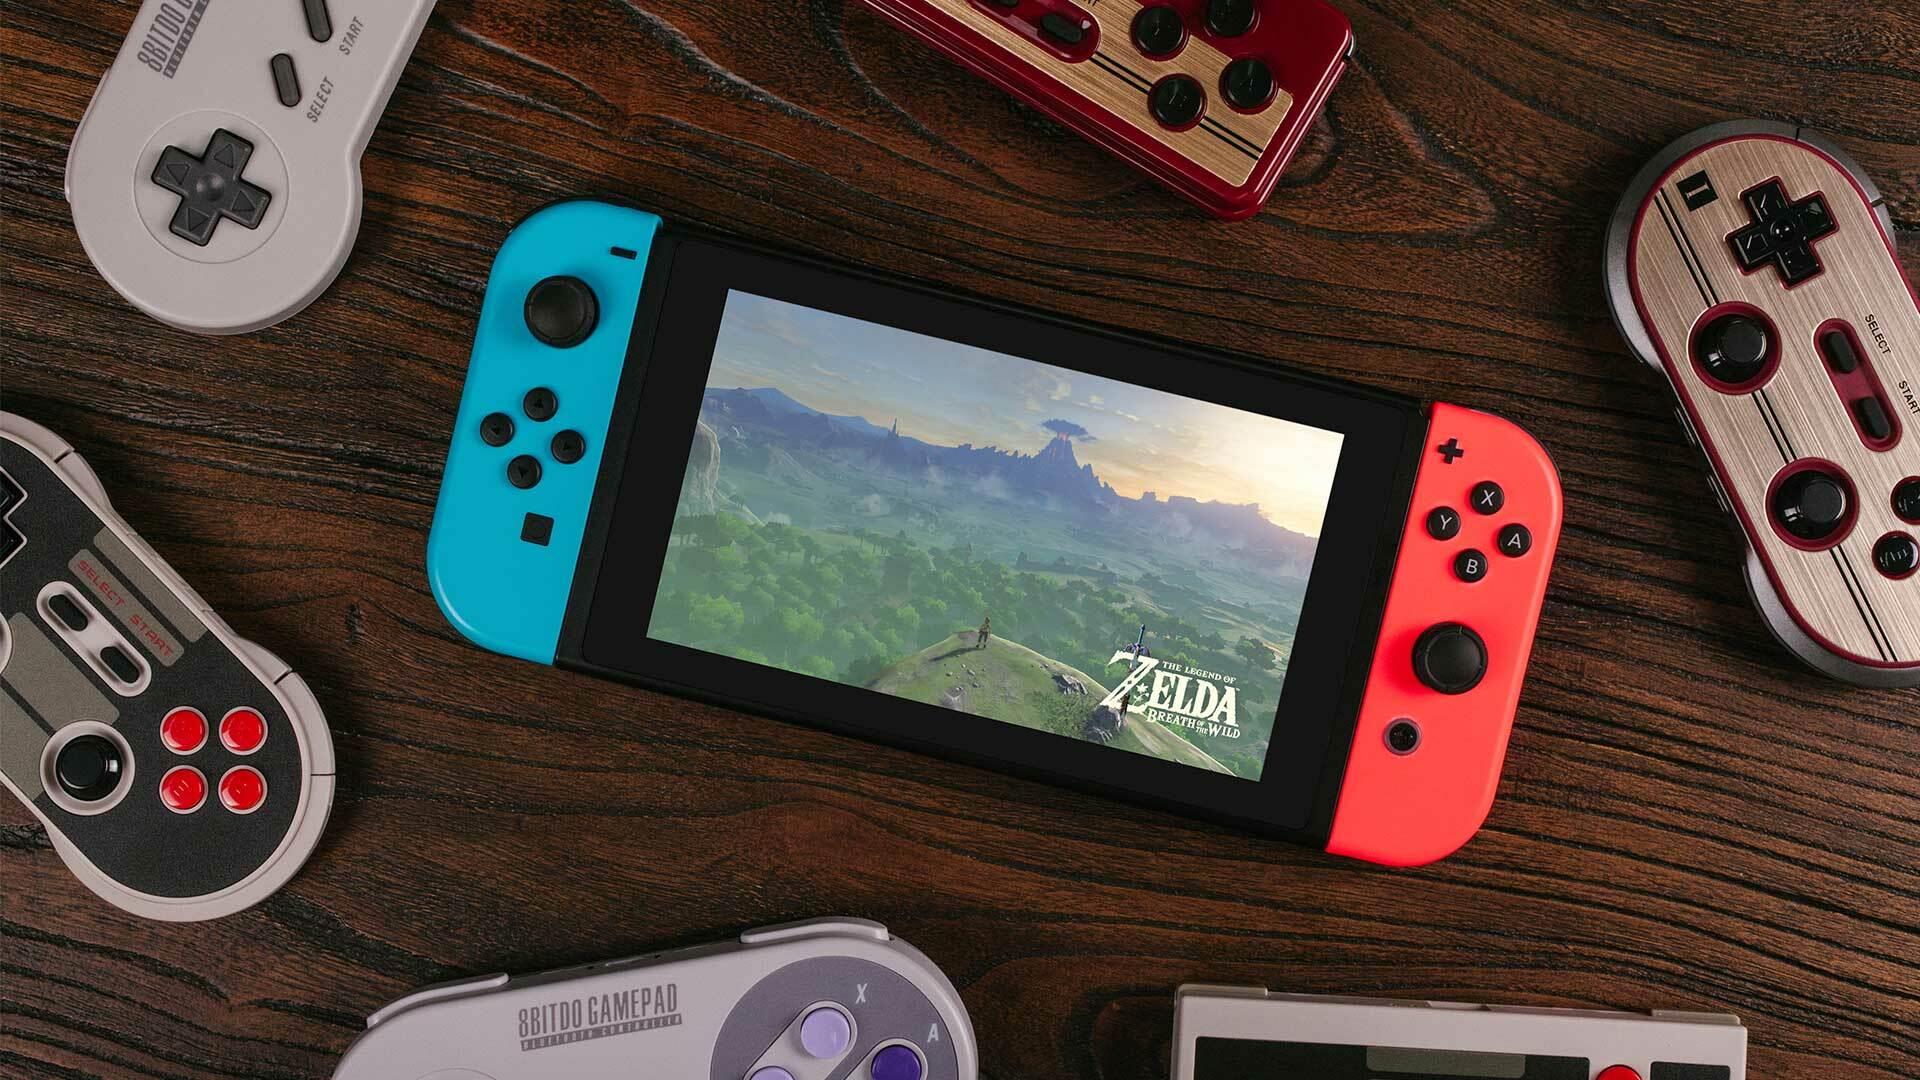 8Bitdo's SNES-Inspired Bluetooth Controller Designed for Switch Is up For Pre-Order